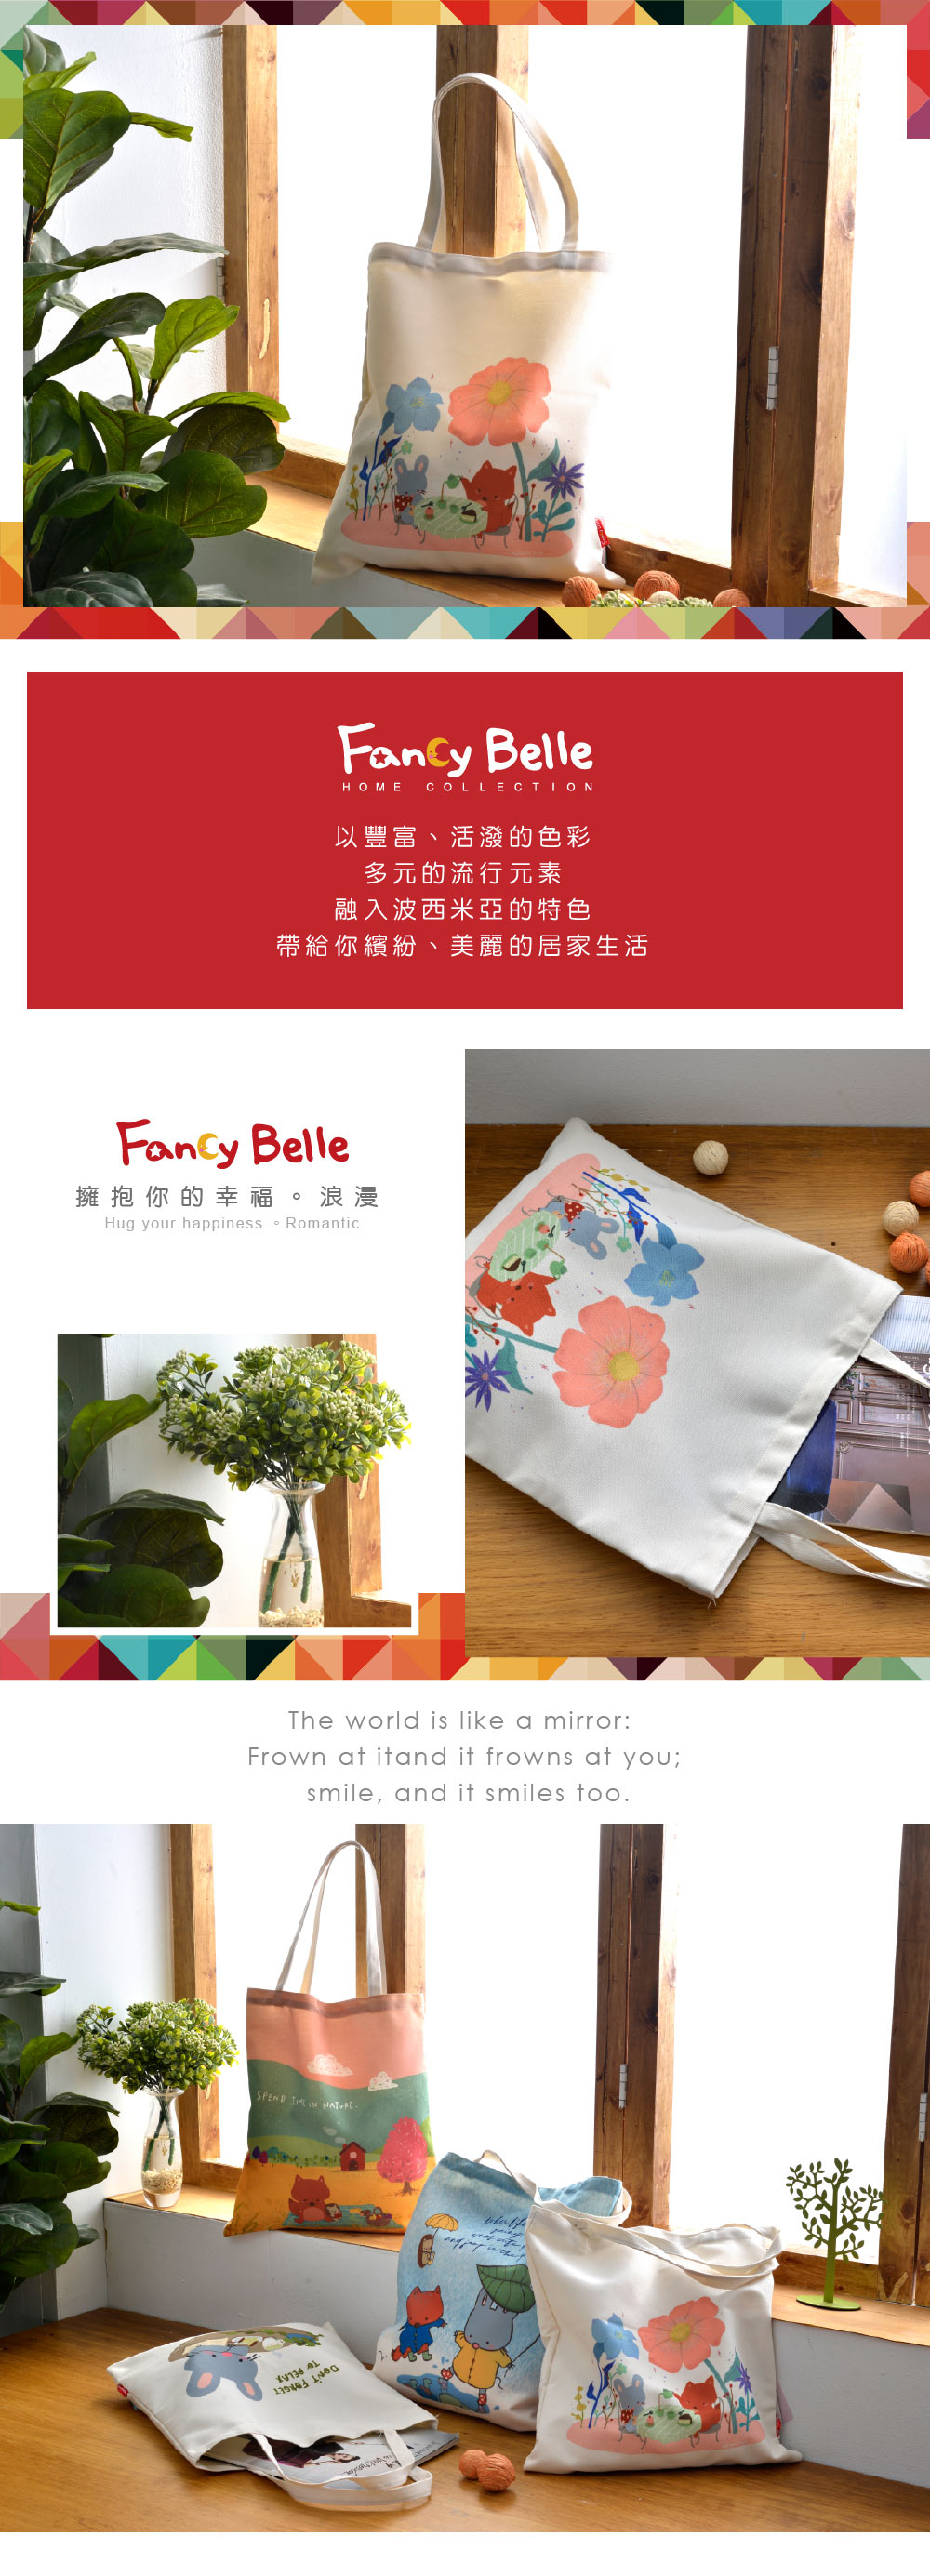 購物袋,Fancy Belle